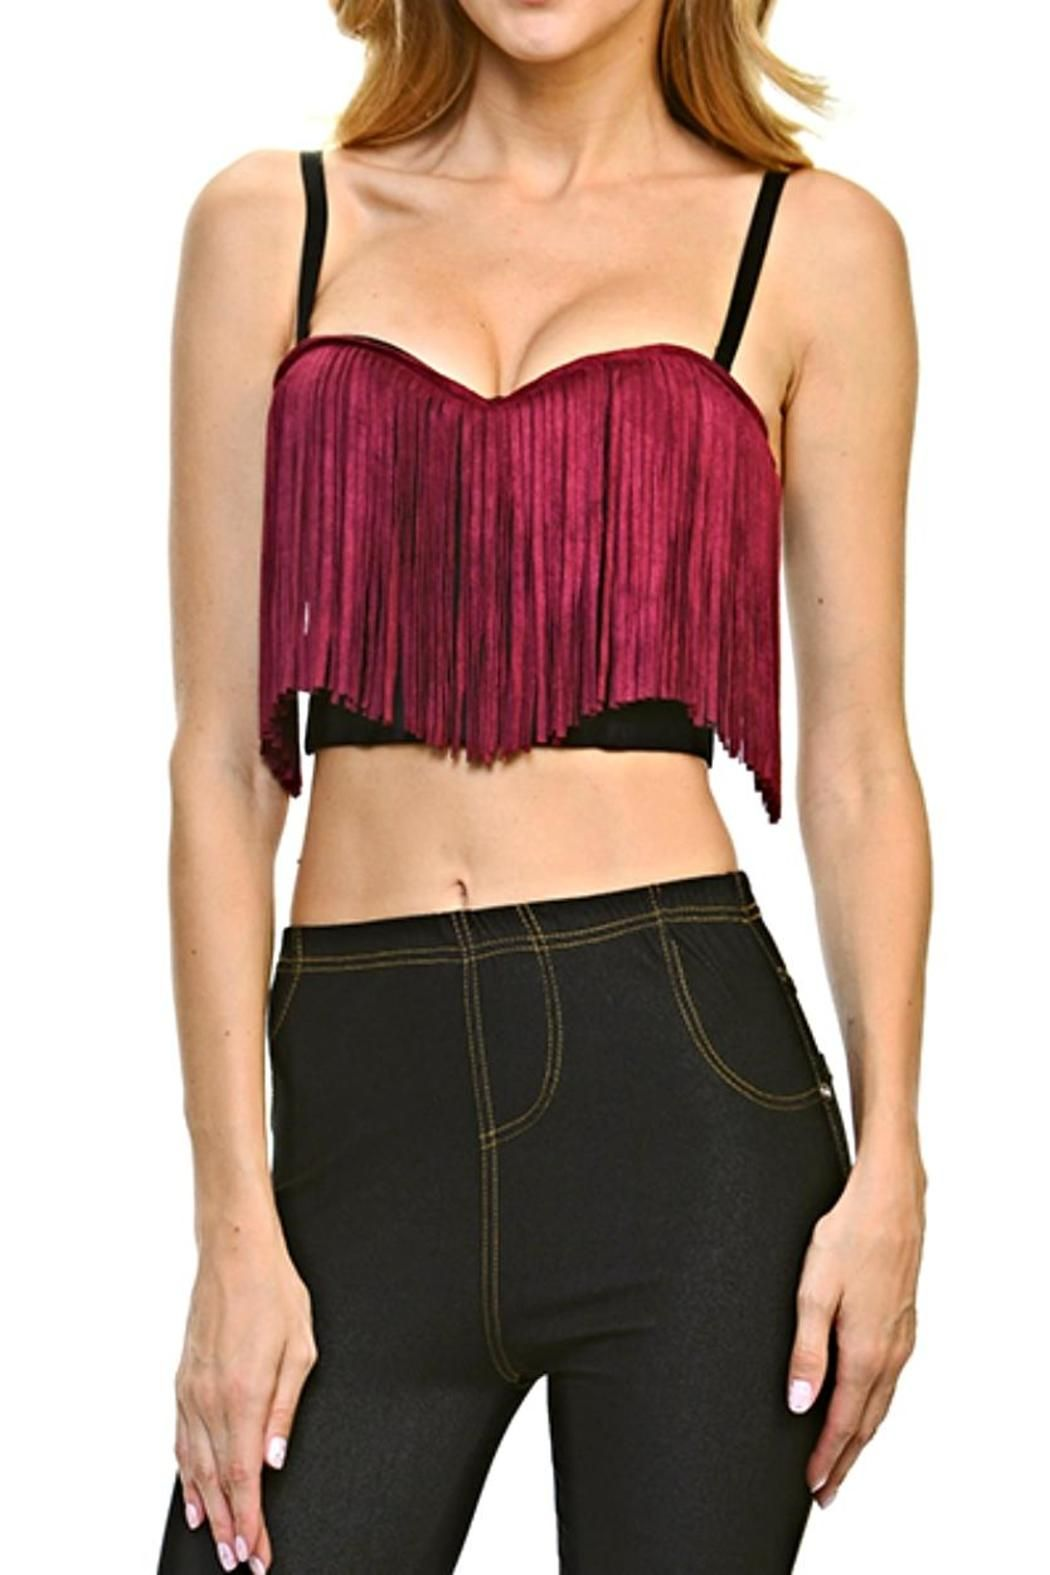 8bf5cb37868e Add edge to your wardrobe with this black crop top bustier with burgundy  faux suede fringe accent. Features adjustable/removable straps, ...